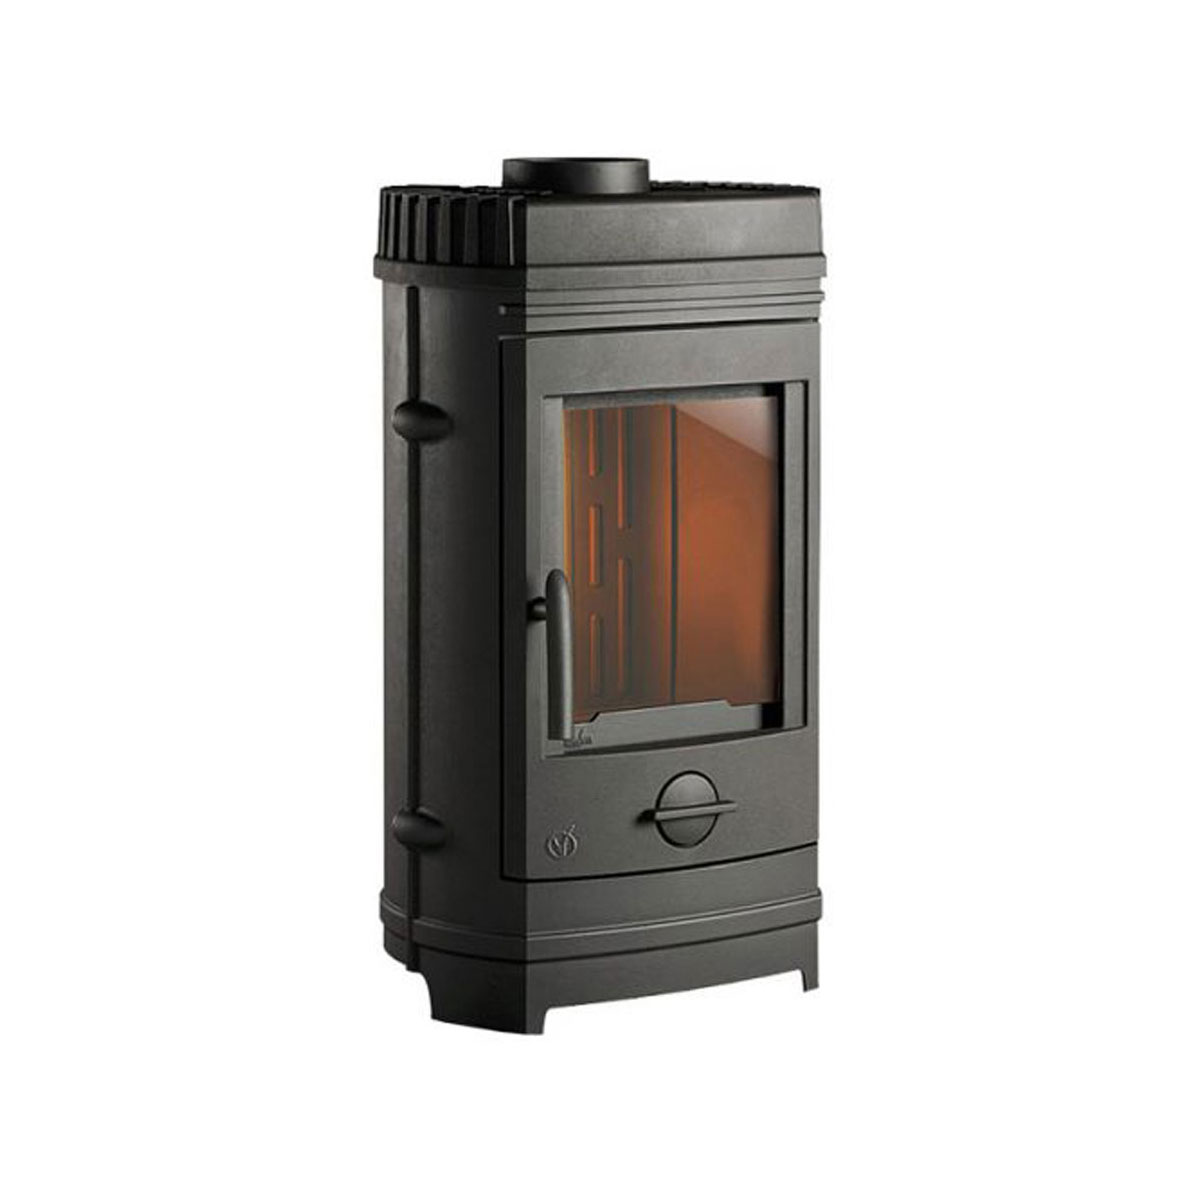 INVICTA FRANCE Wood Stove Chatel